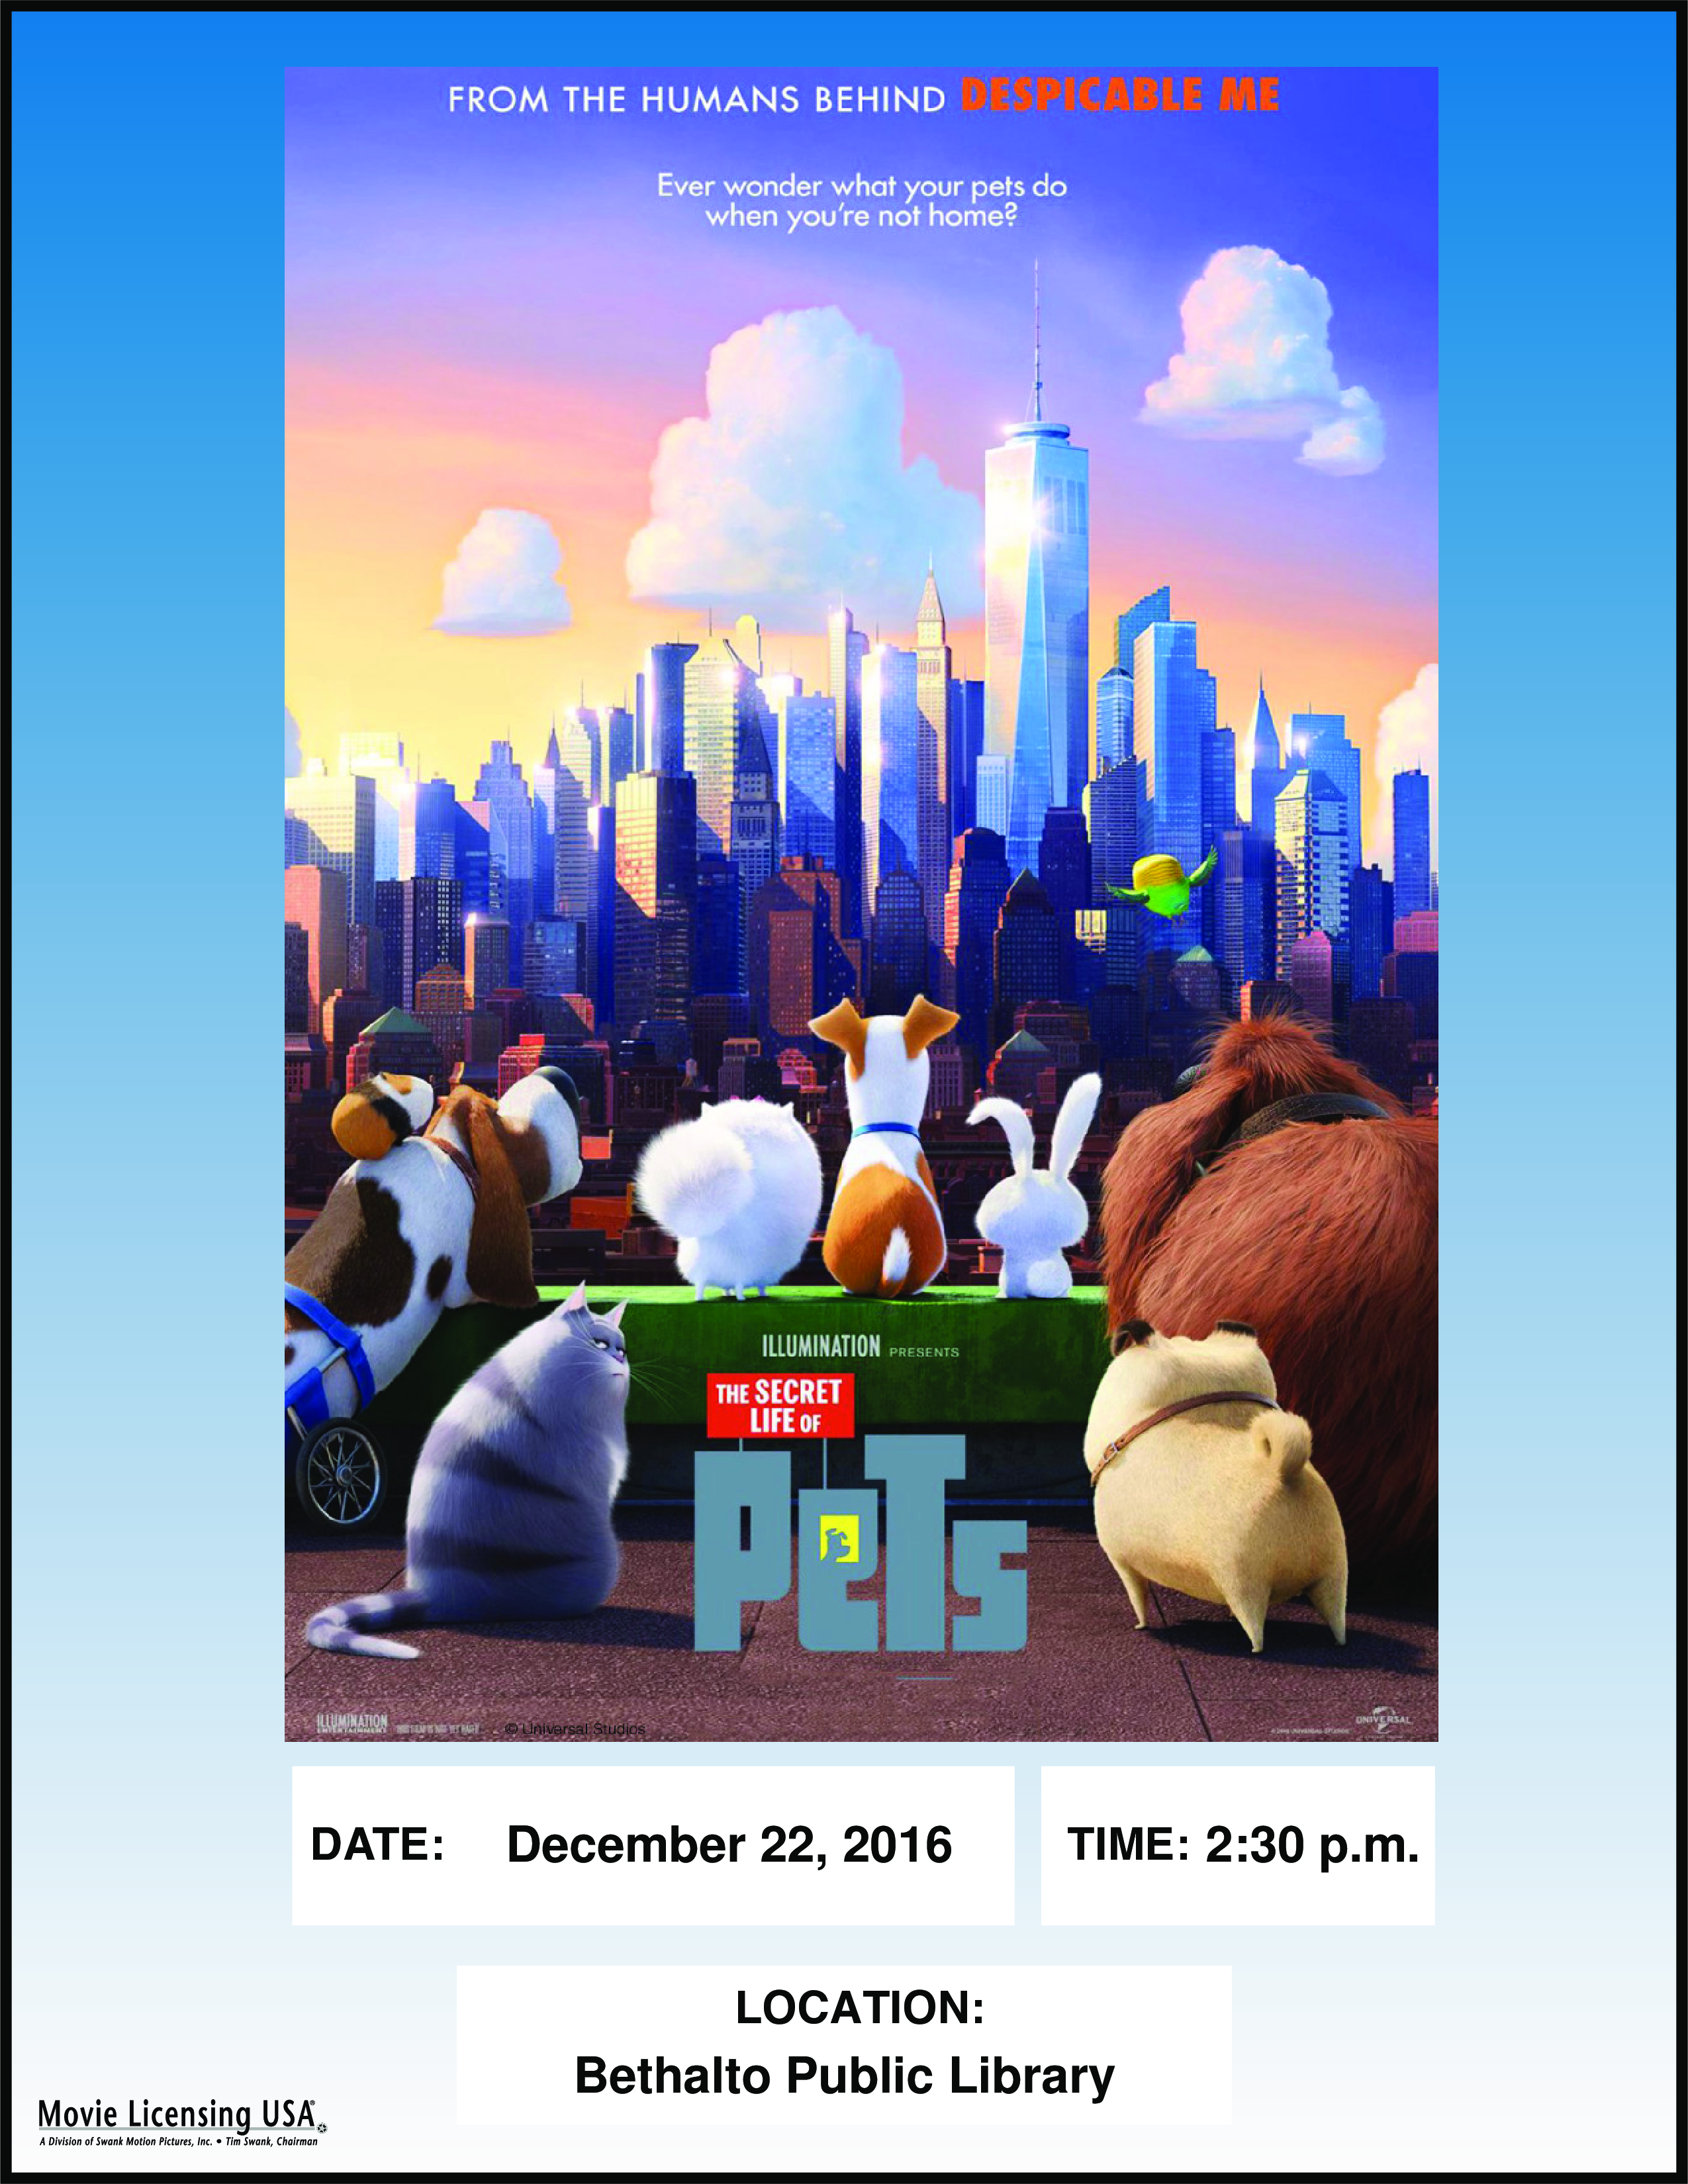 THE_SECRET_LIFE_OF_PETS_poster.png